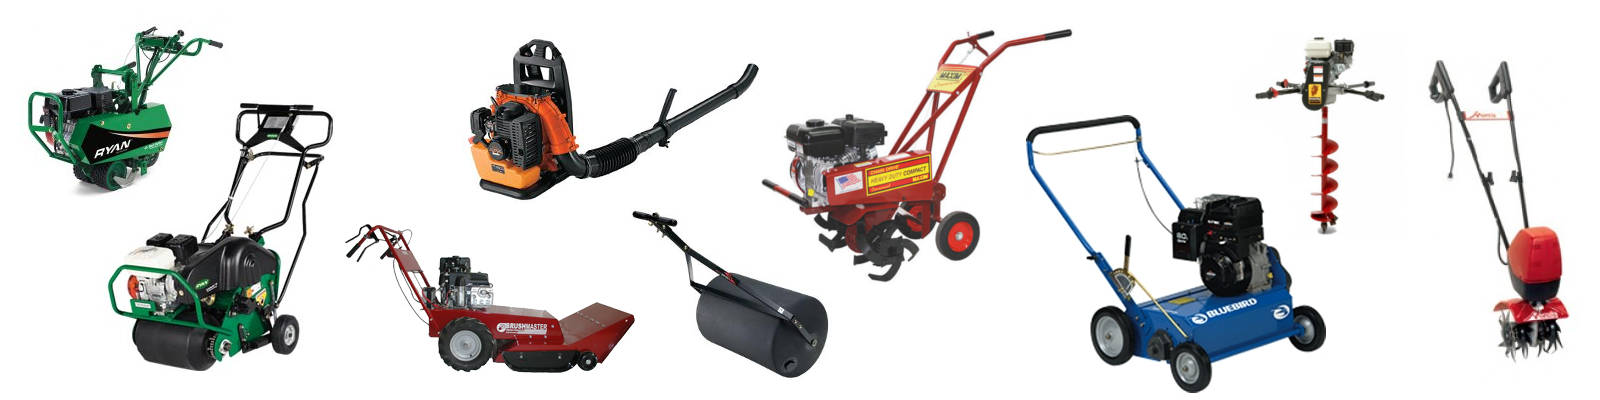 Master Tow Dolly Wiring Diagram Master Tow Accessories, Master Tow